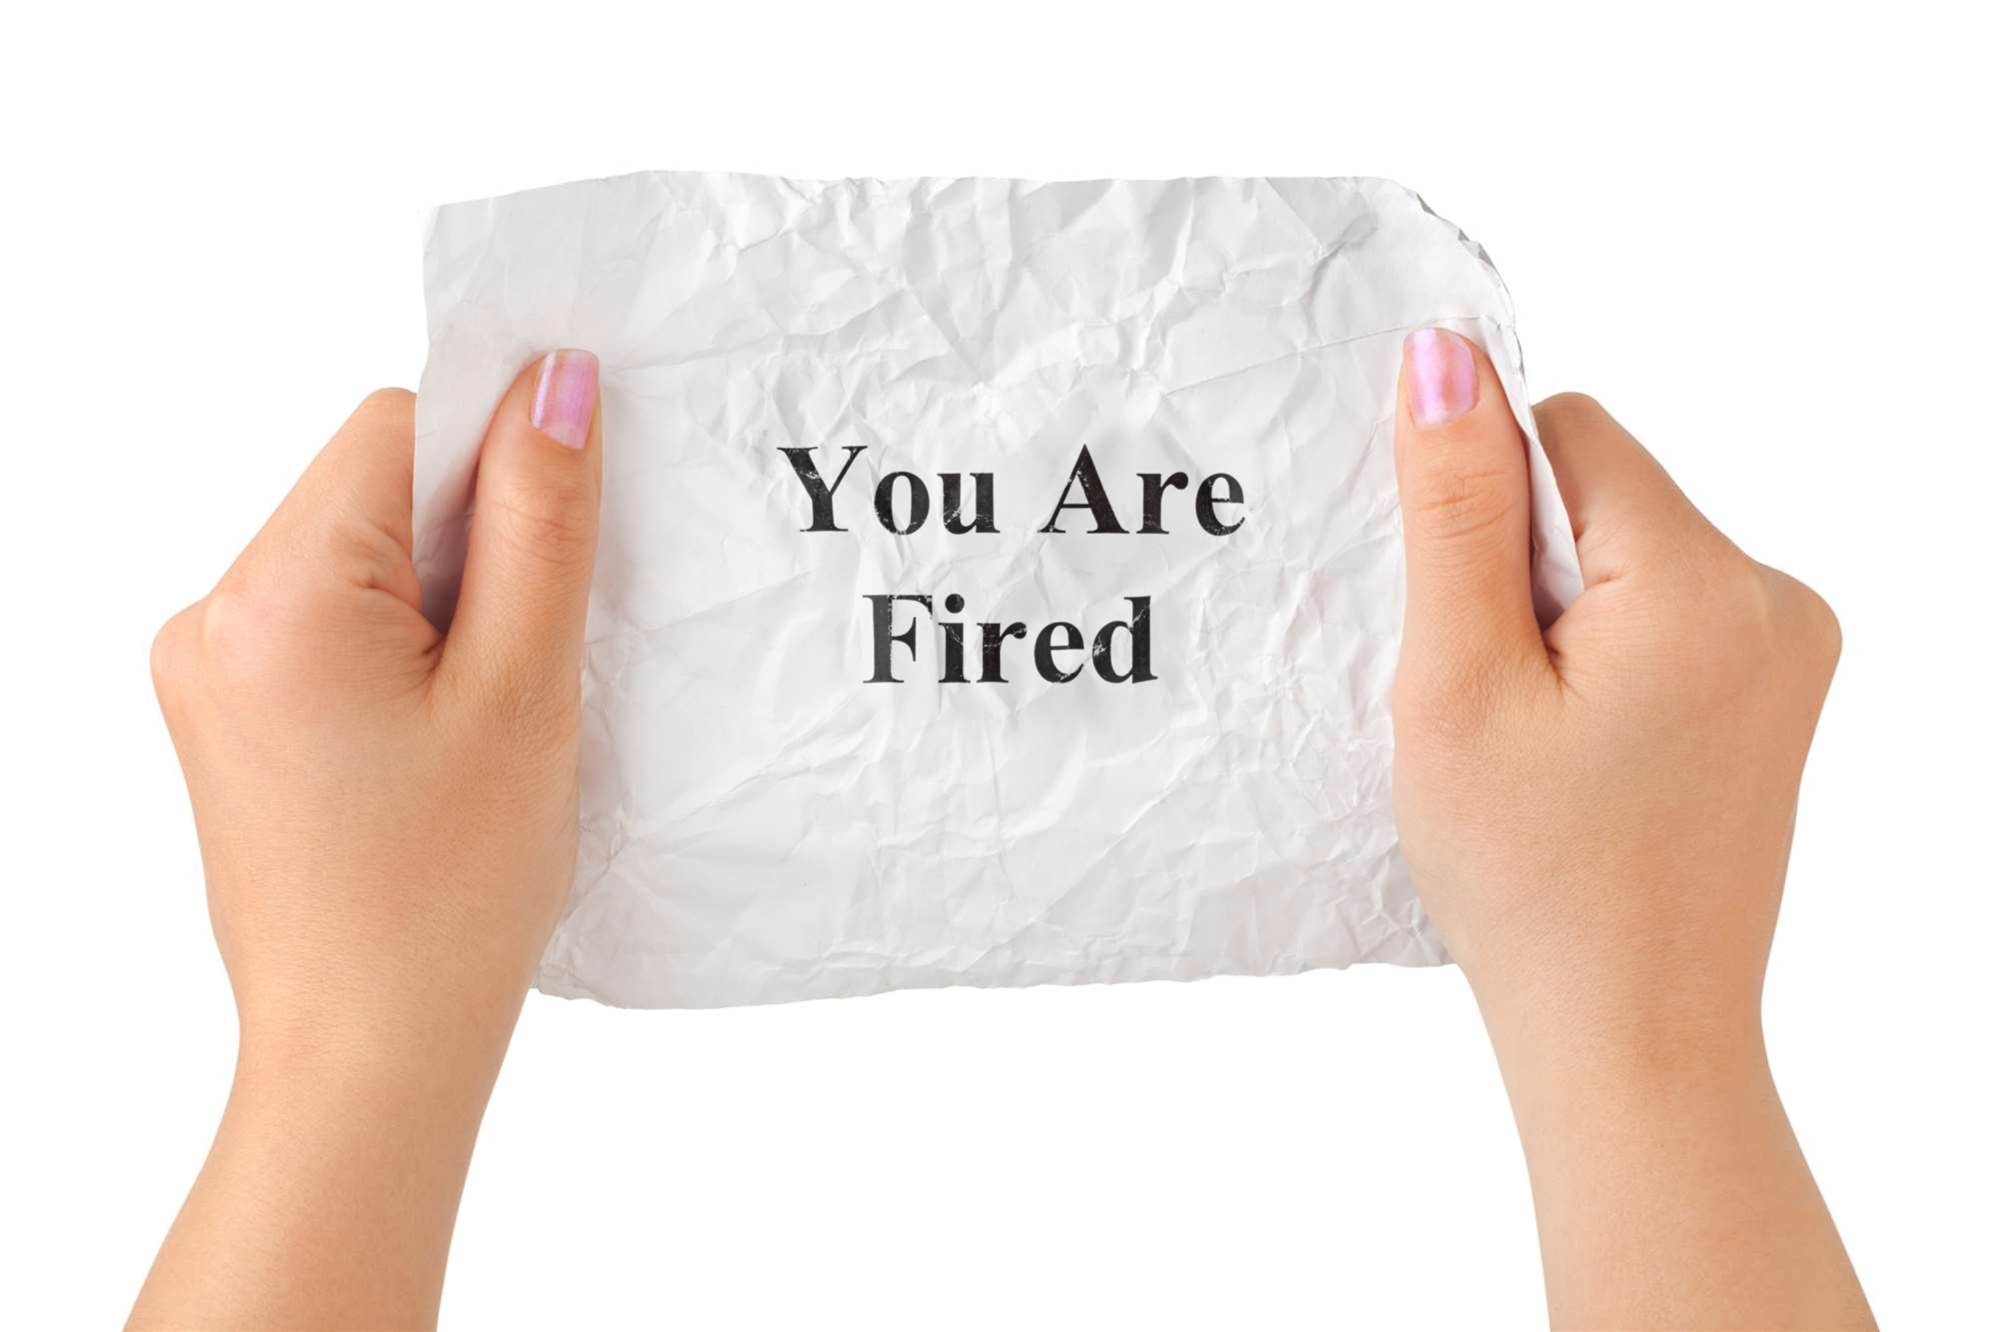 When being rude to IT can get you fired